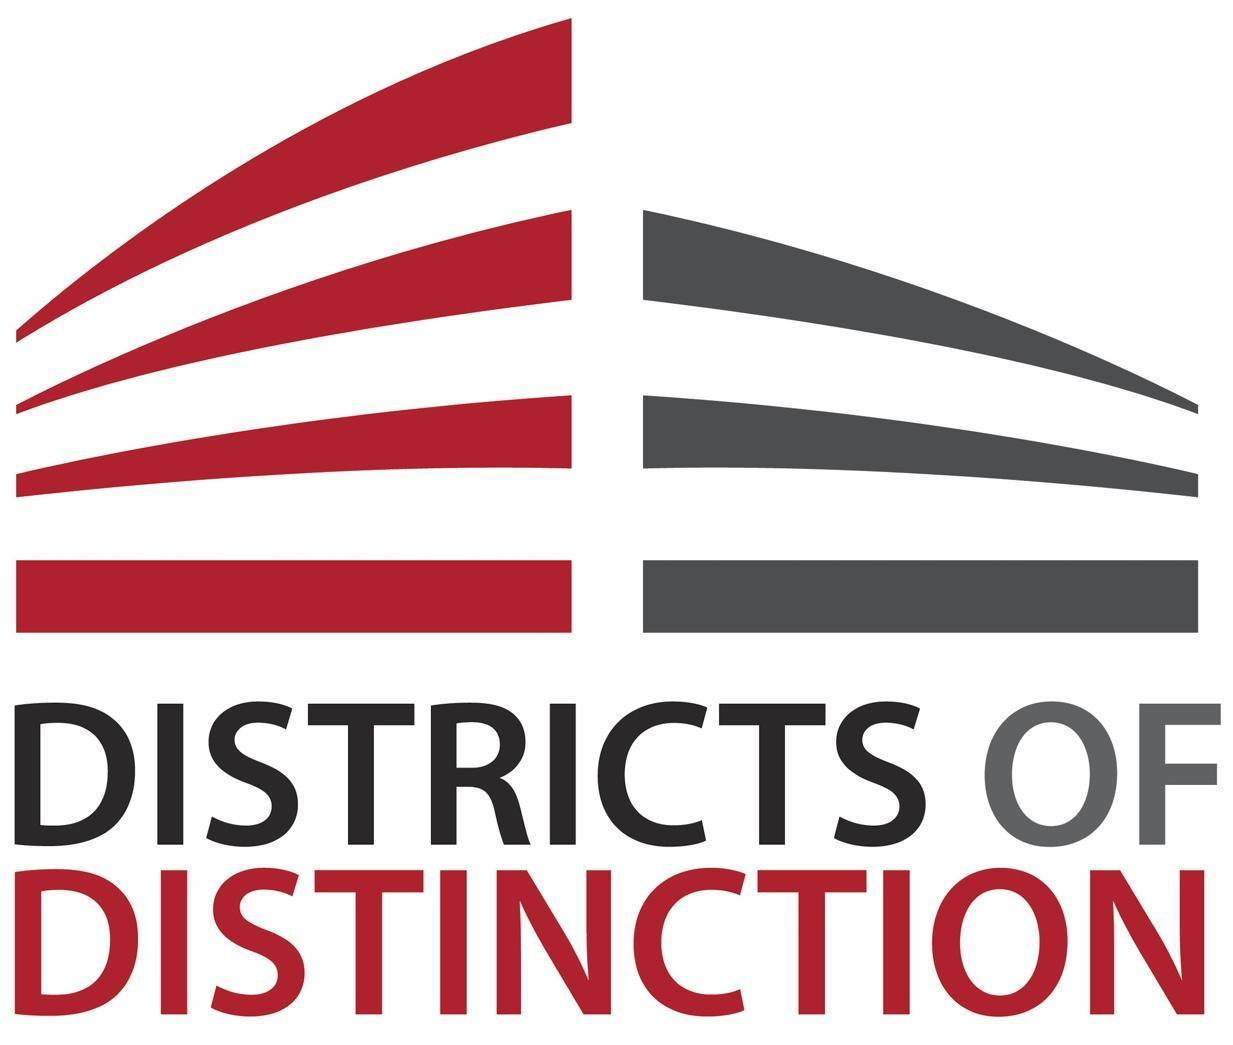 SGUSD was named 'District of Distinction' in 2019 for the Music Immersion Experience Program